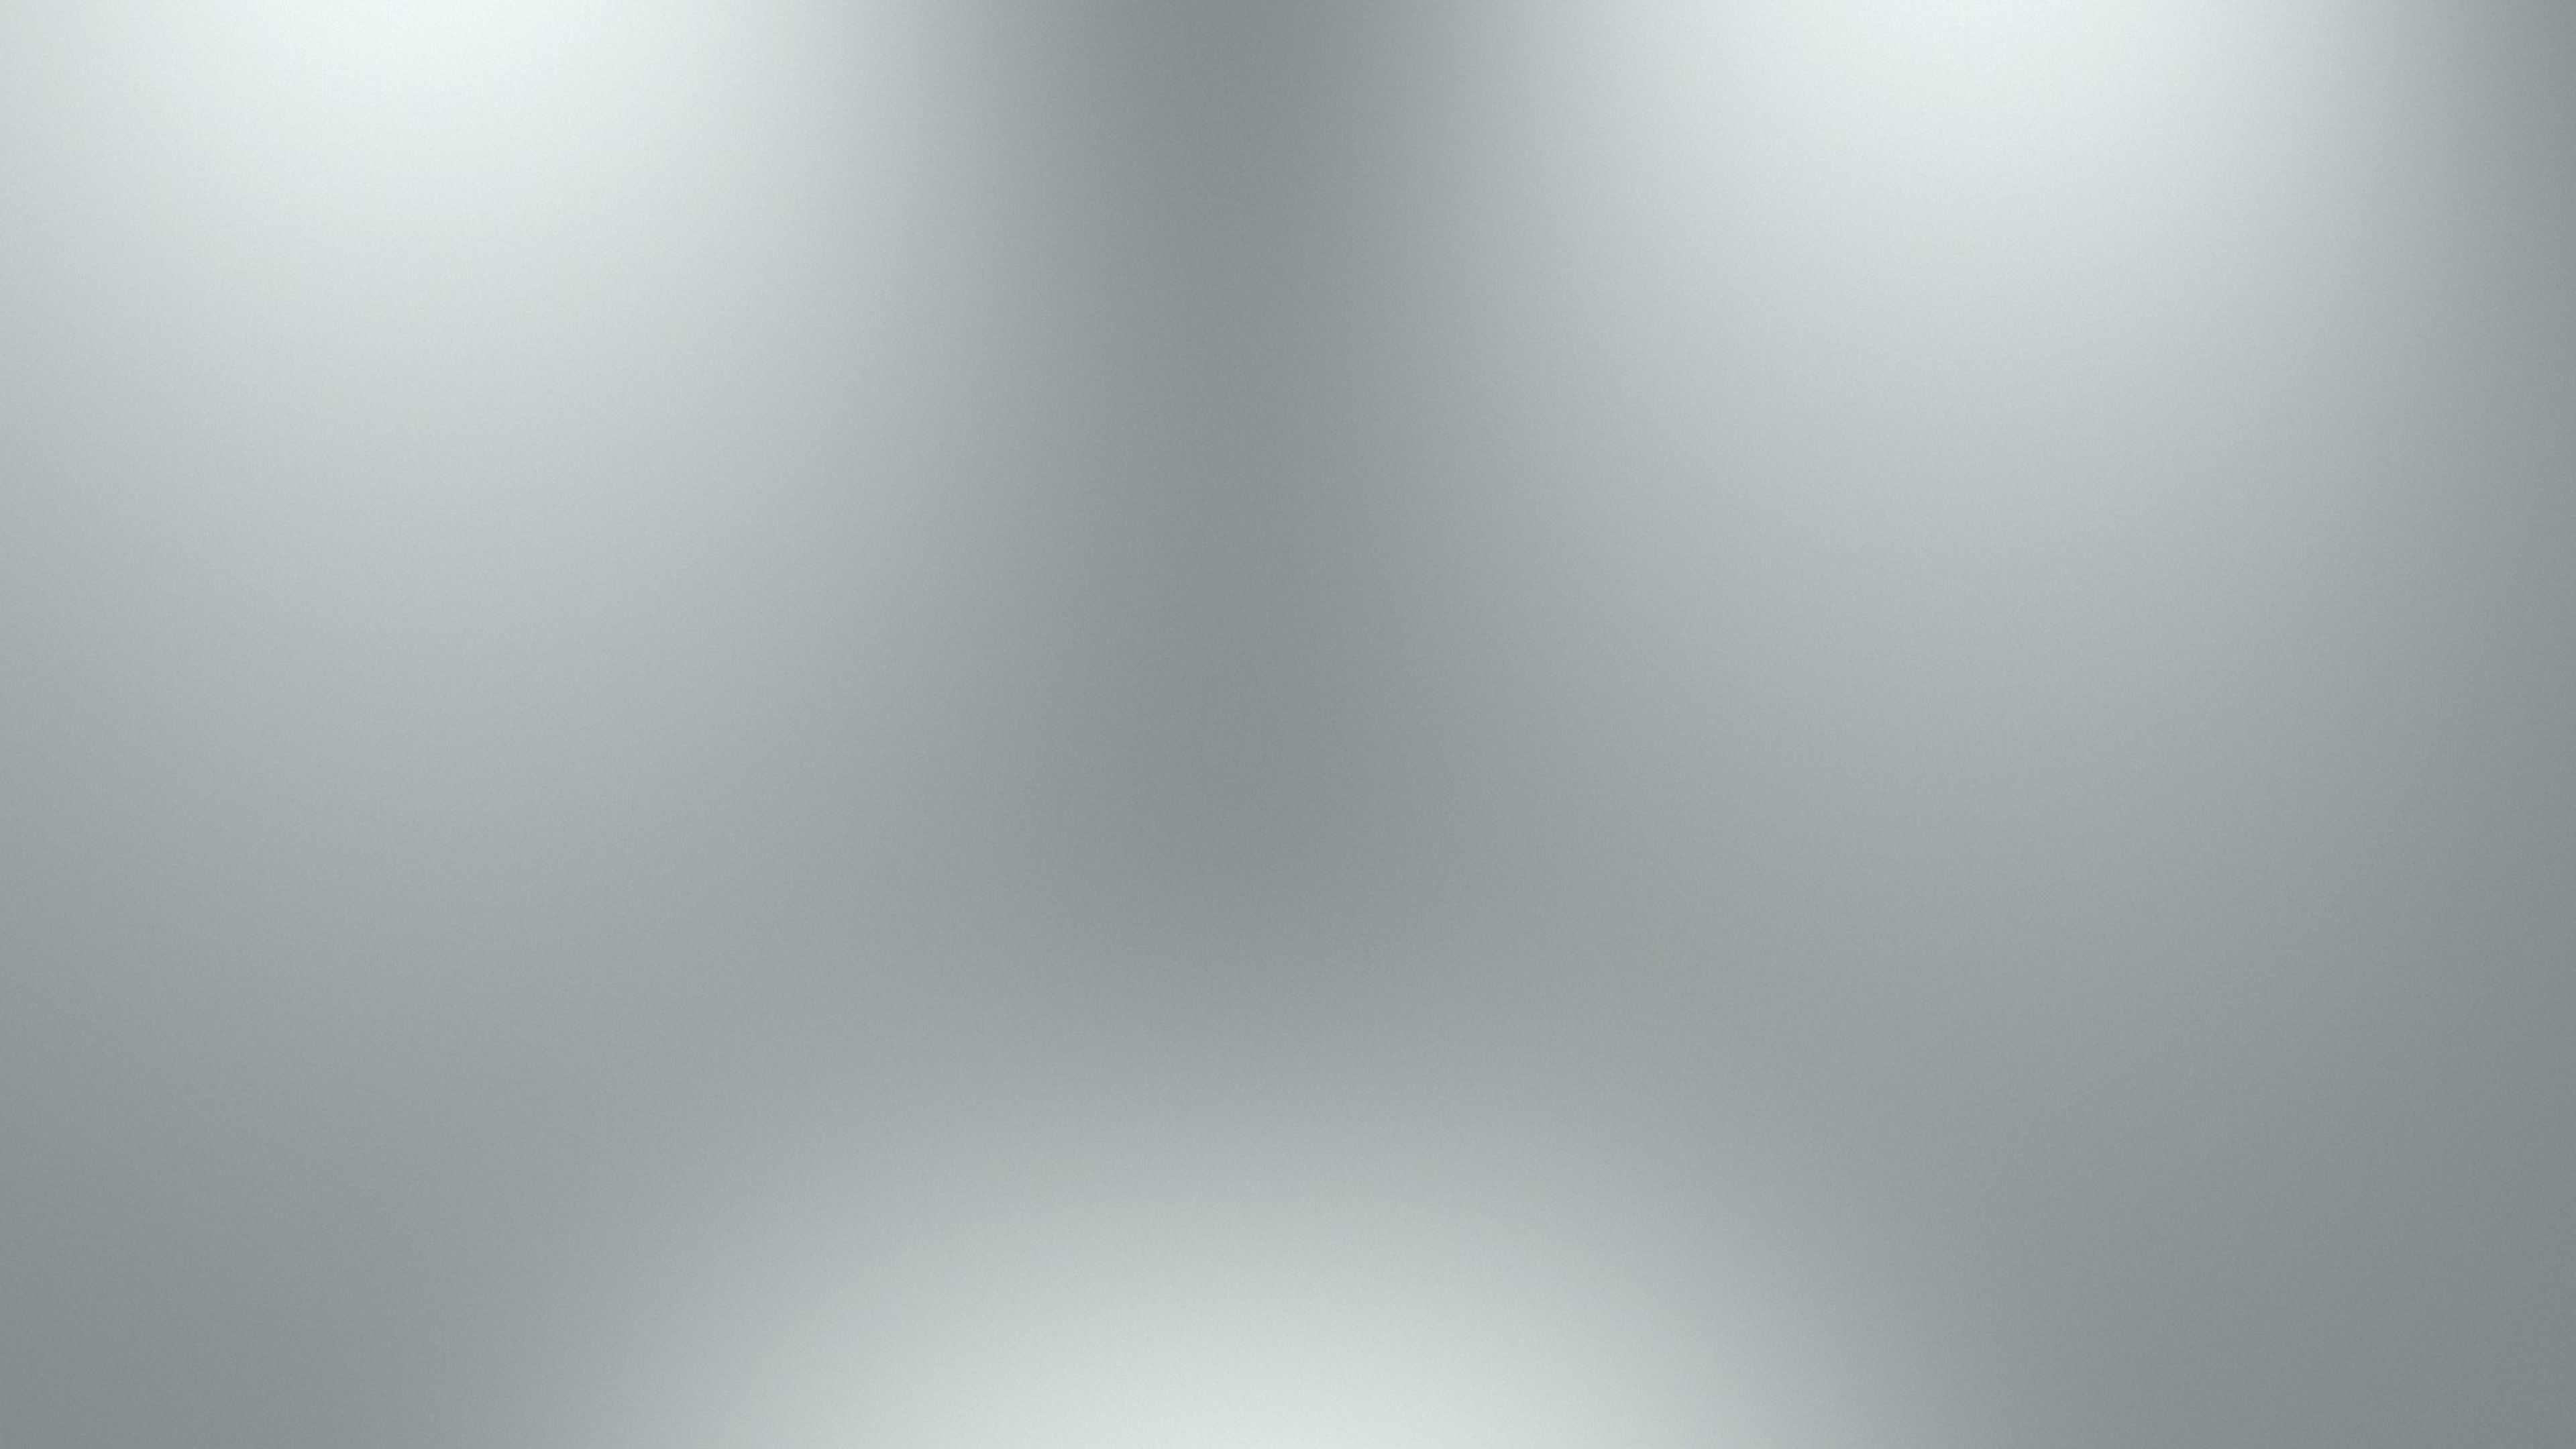 Samsung Galaxy 3d Wallpapers Free Download Grey Abstract Wallpaper 27 3840x2160